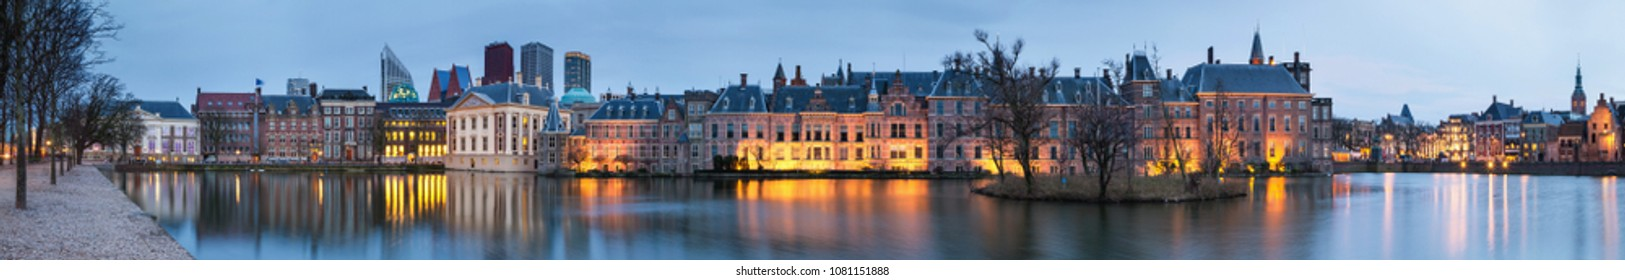 The Hague, Netherlands, January 6, 2018. City Landscape, sunset panorama - view on pond Hofvijver and complex of buildings Binnenhof in from the city centre of The Hague, Netherlands